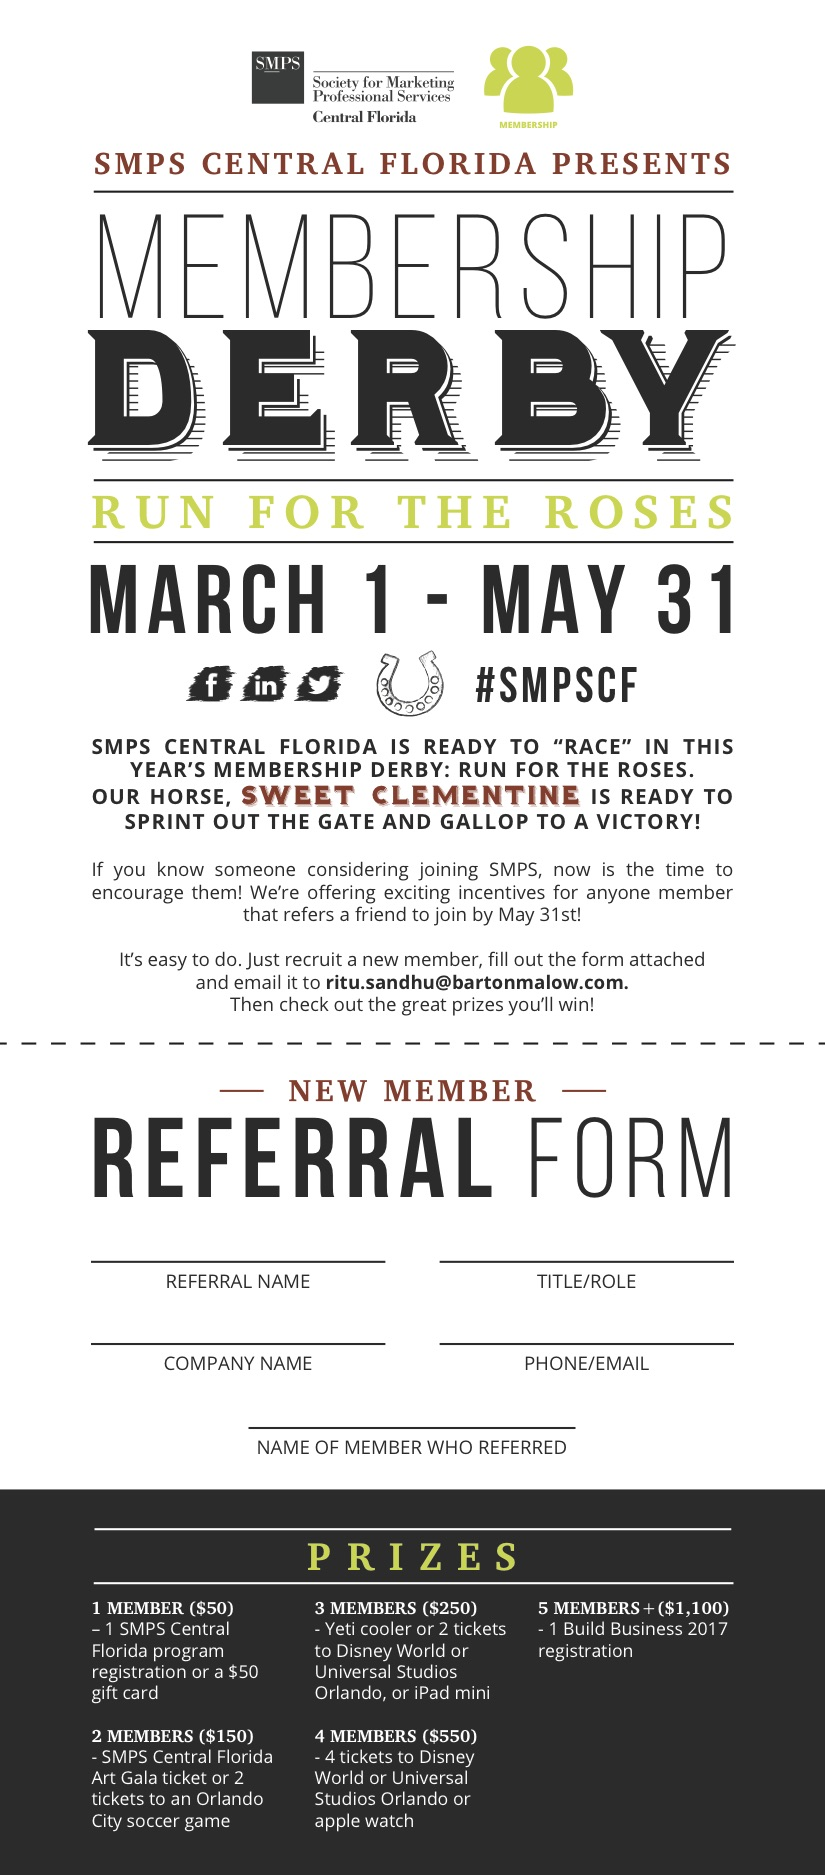 SMPS Central Florida - Downloads